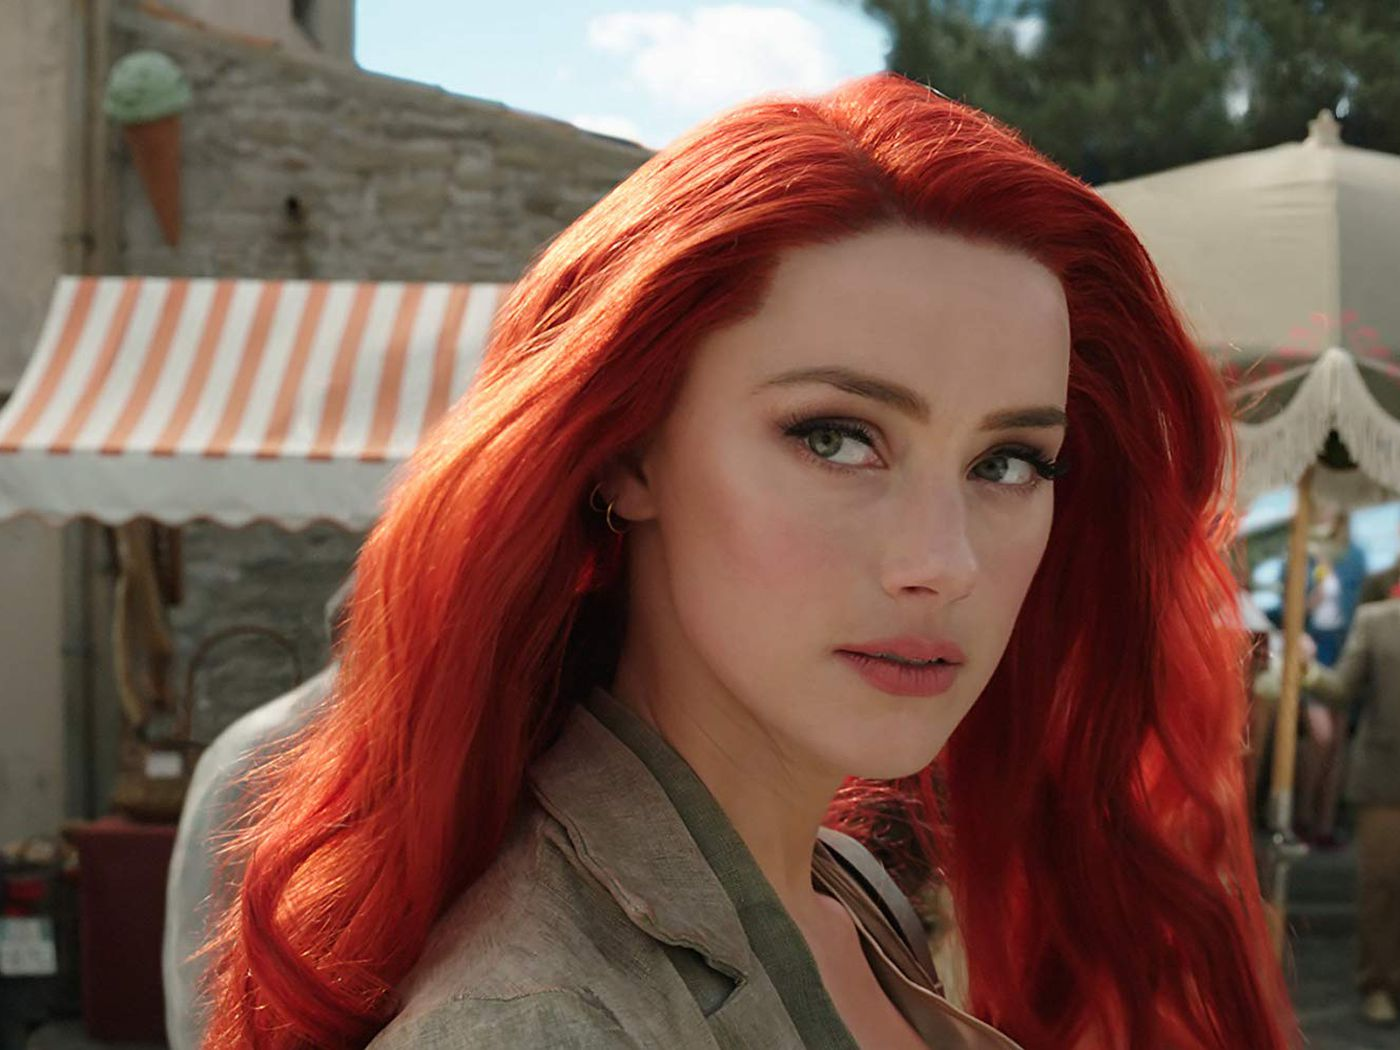 Aquaman Trailer See Amber Heard And Her Giant Red Wig Racked